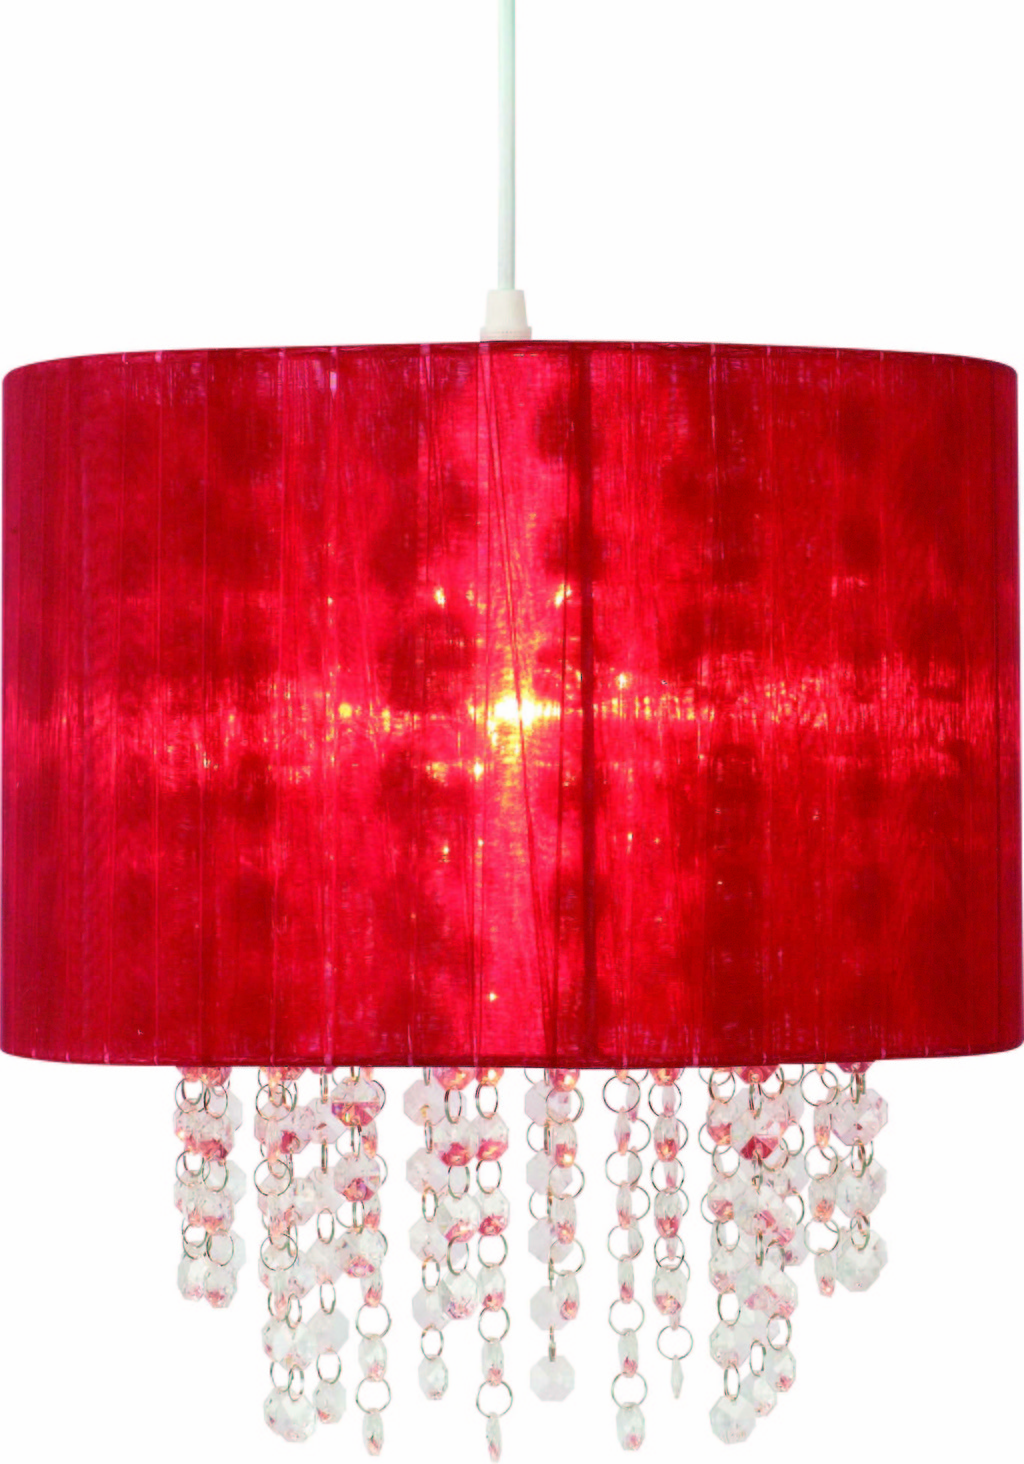 Meridian lighting milano lamp shade red organza shade with clear meridian lighting milano lamp shade red organza aloadofball Choice Image